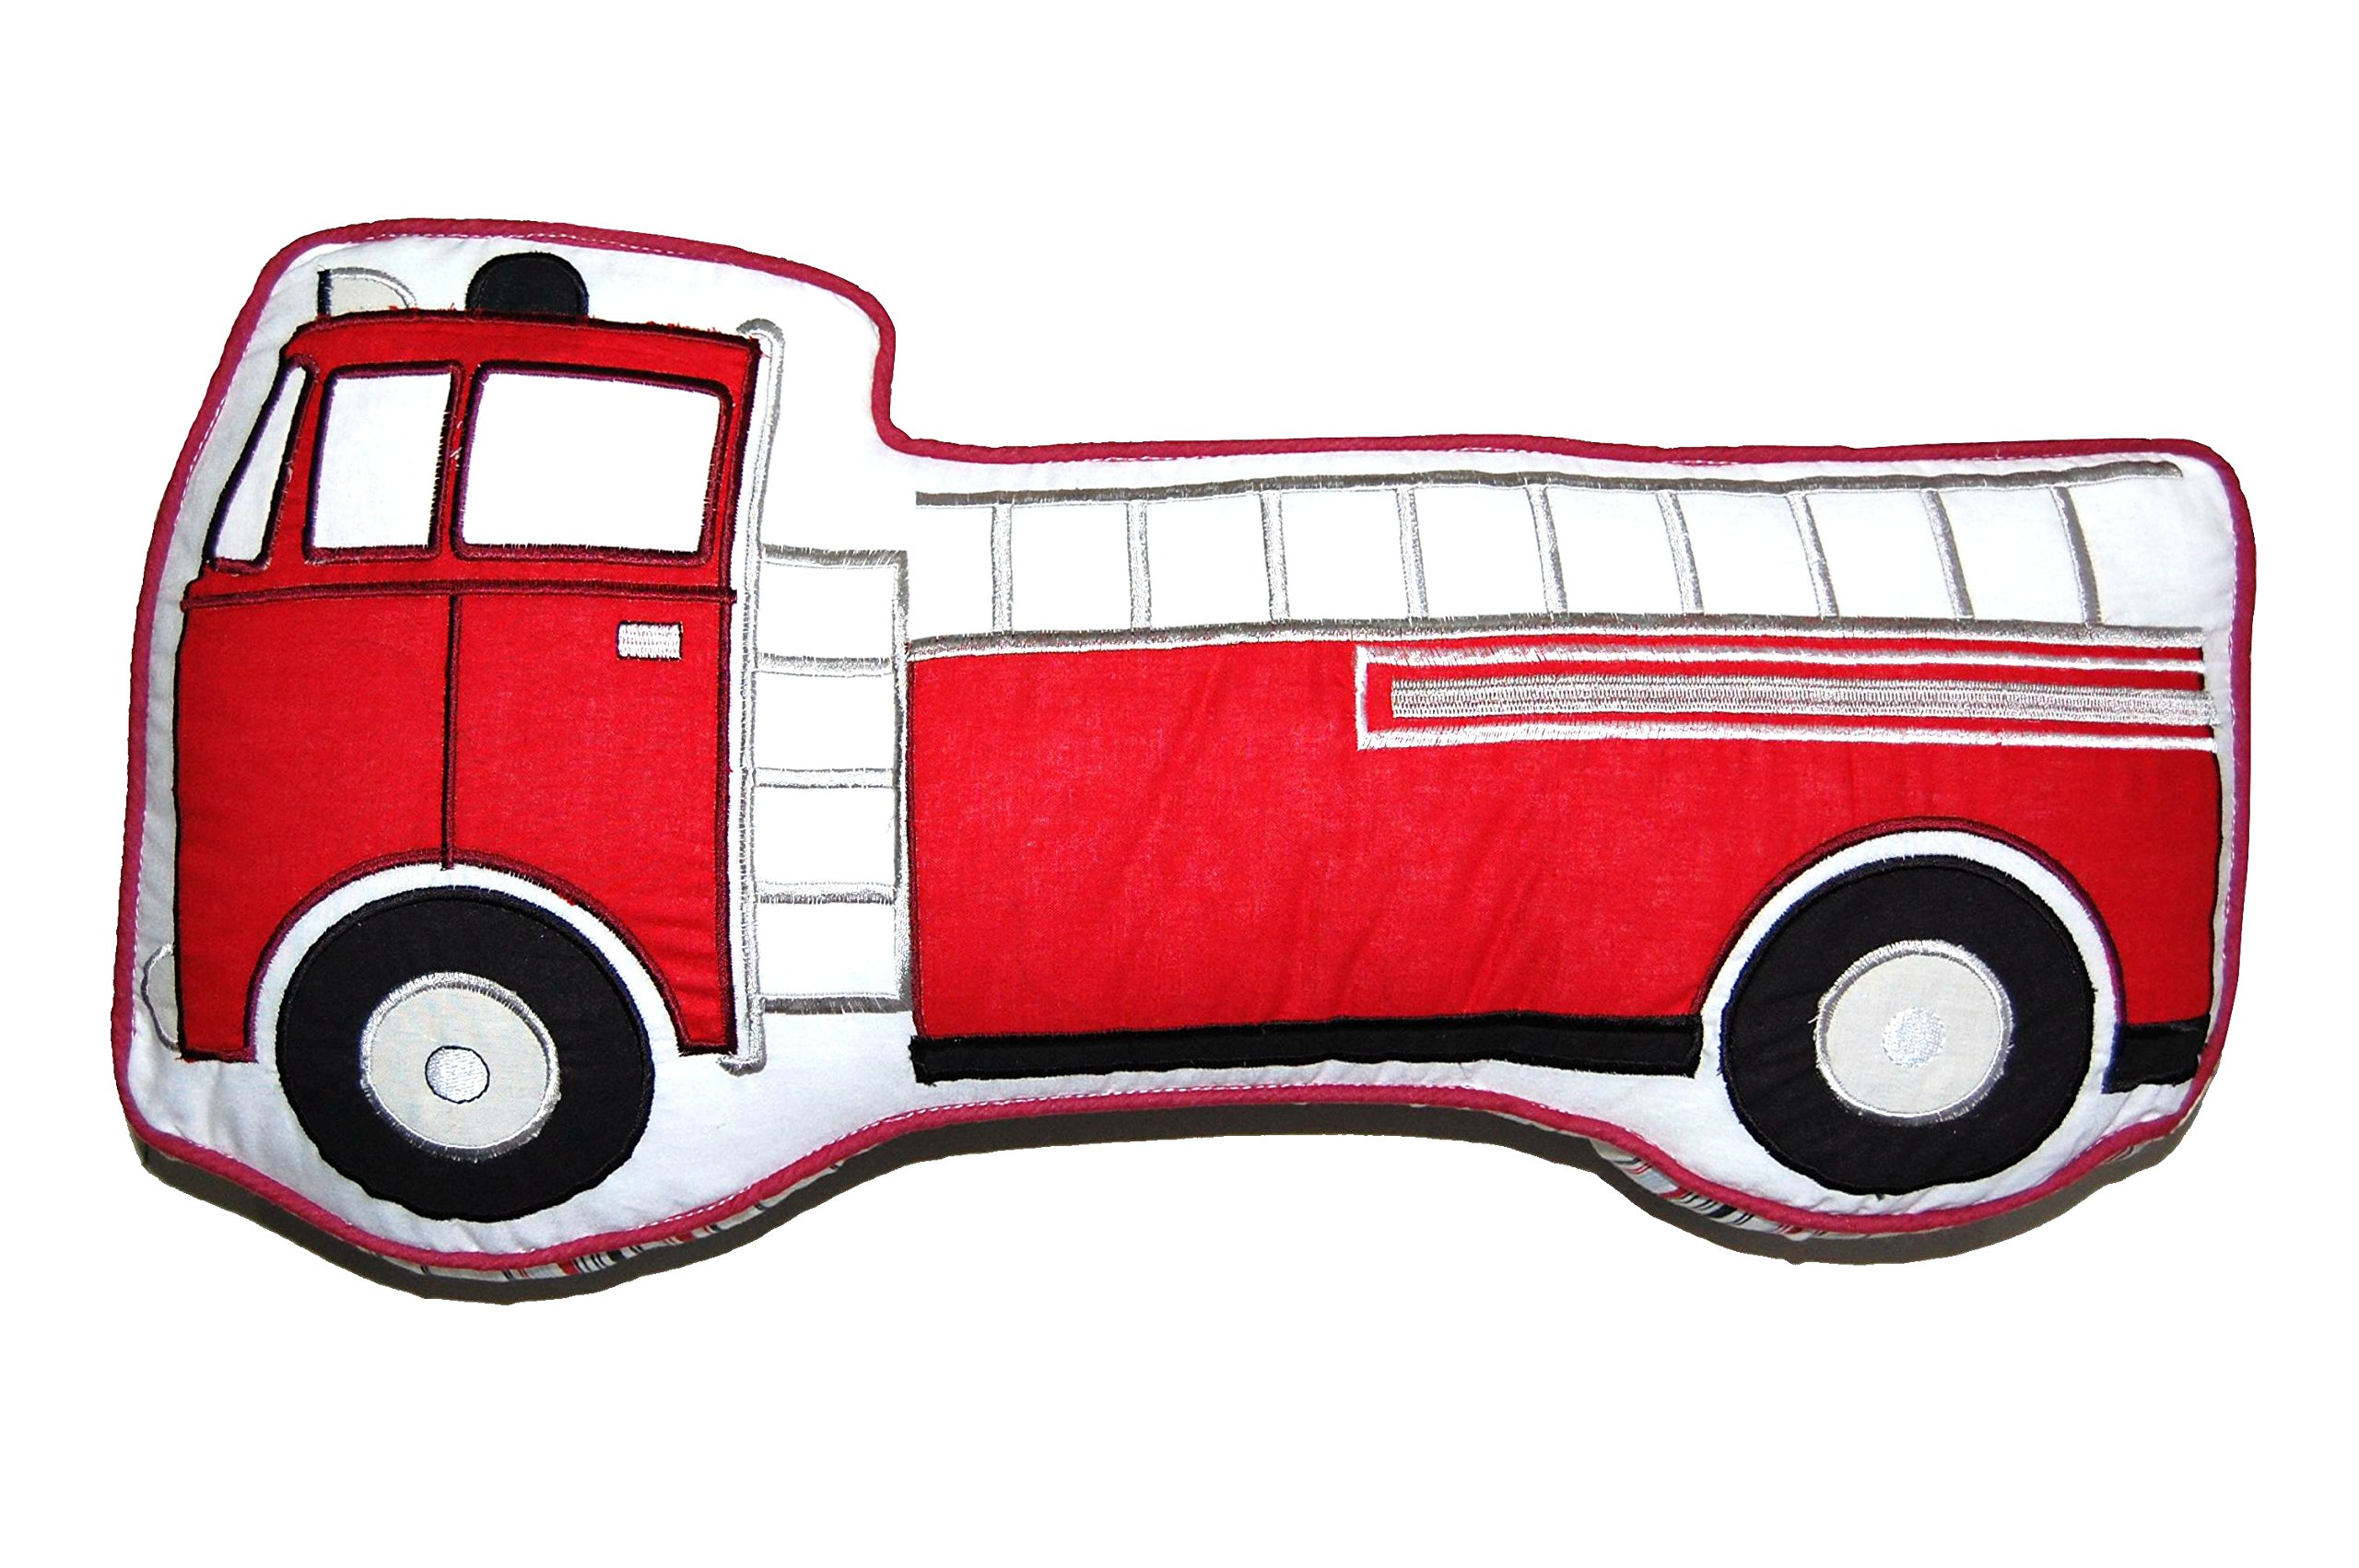 Cozy Line Home Fashions Truck Shape Throw Pillow, Red White Embroidered Print Pattern Stuffed Toy Doll Cotton Decorative Pillow, Gifts for Kid Boys (Truck Pillow 1, Decor Pillow - 1 Piece)